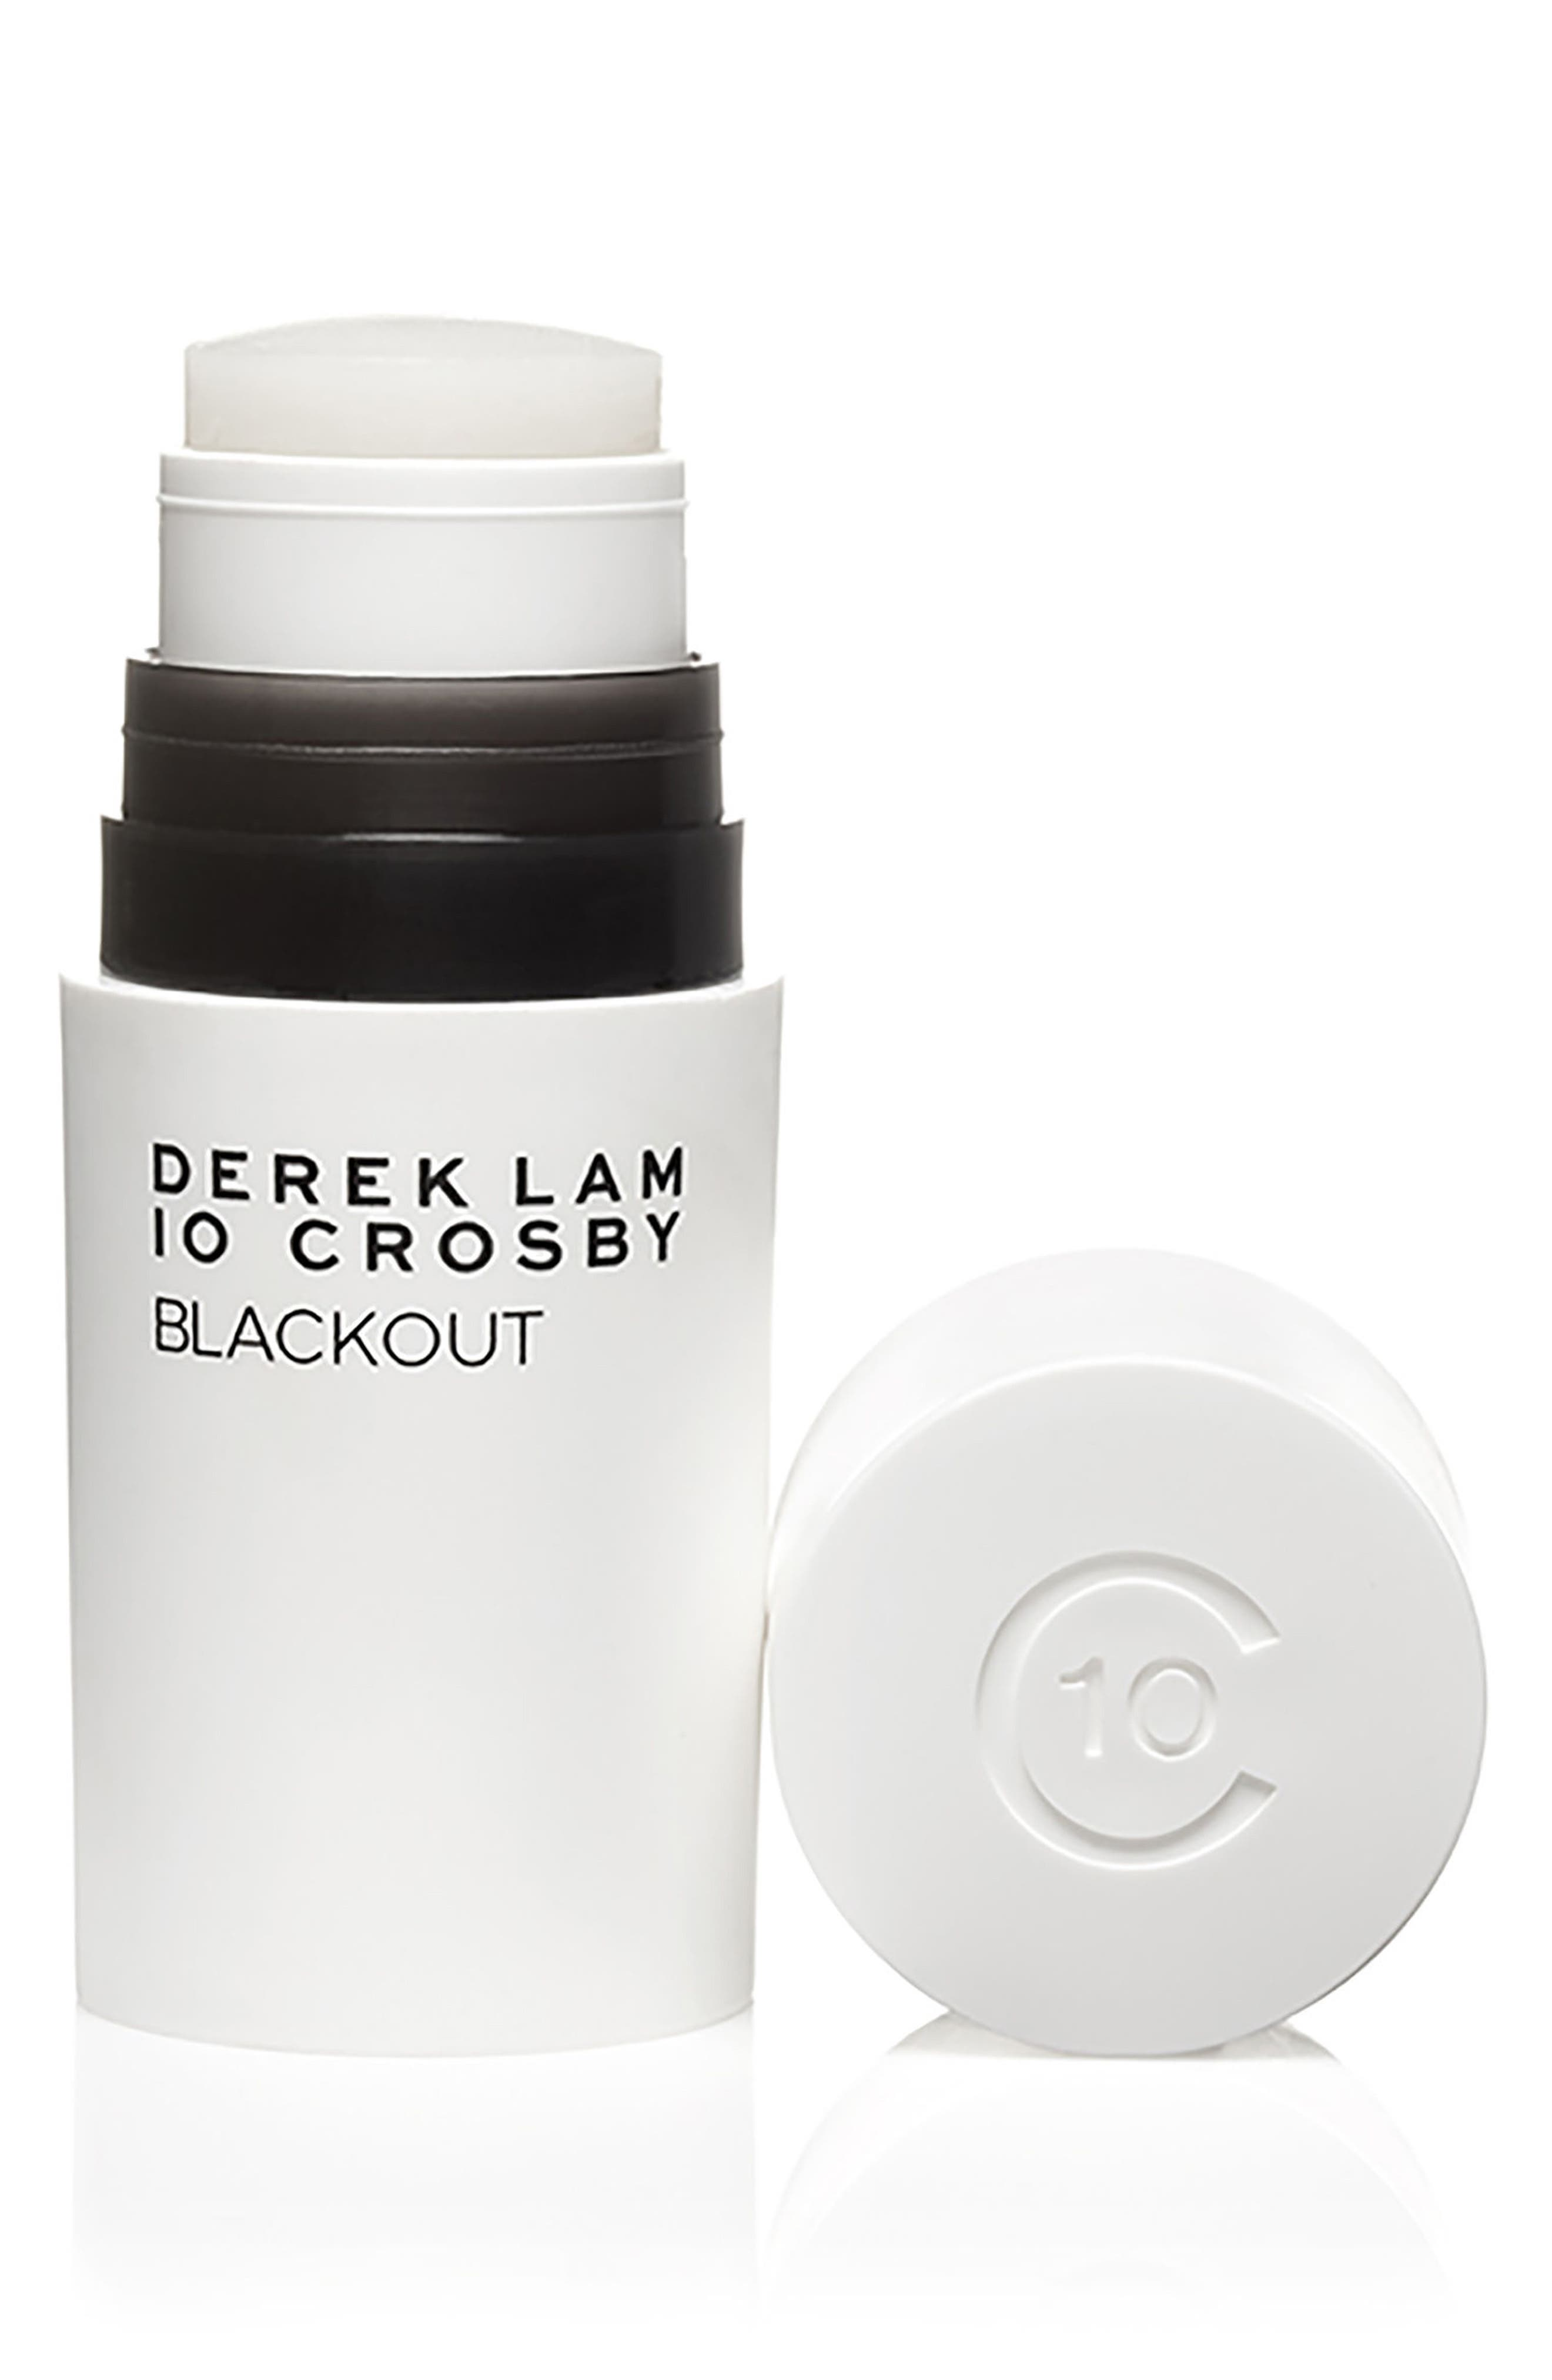 Derek Lam 10 Crosby Blackout Parfum Stick (Nordstrom Exclusive)